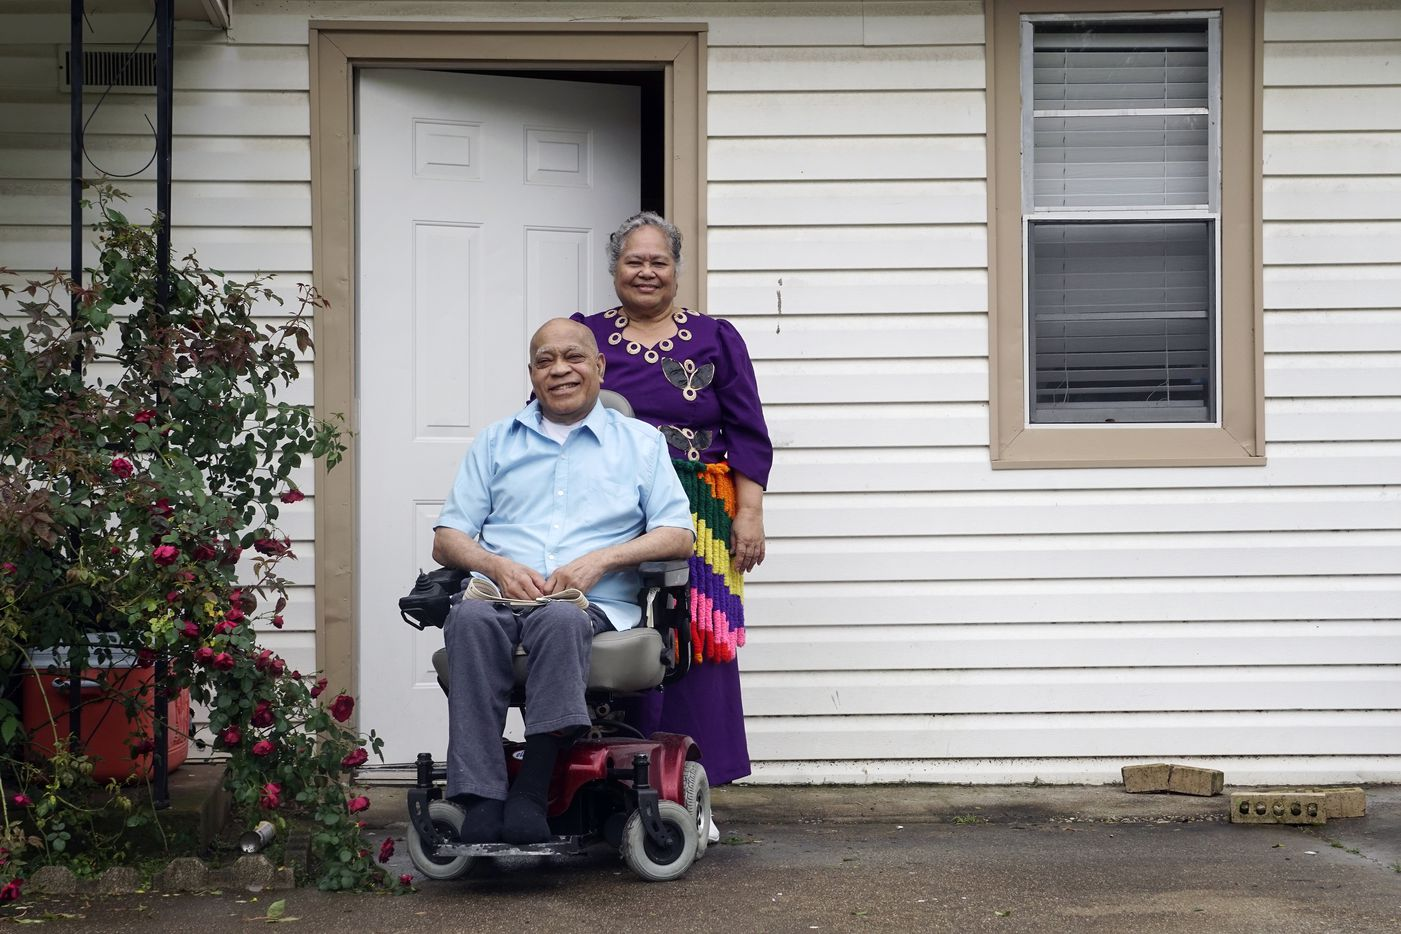 Peni and Losa Asaeli, like many in the Tongan community,  made their home in Euless because of its proximity to airline jobs at  DFW International Airport.